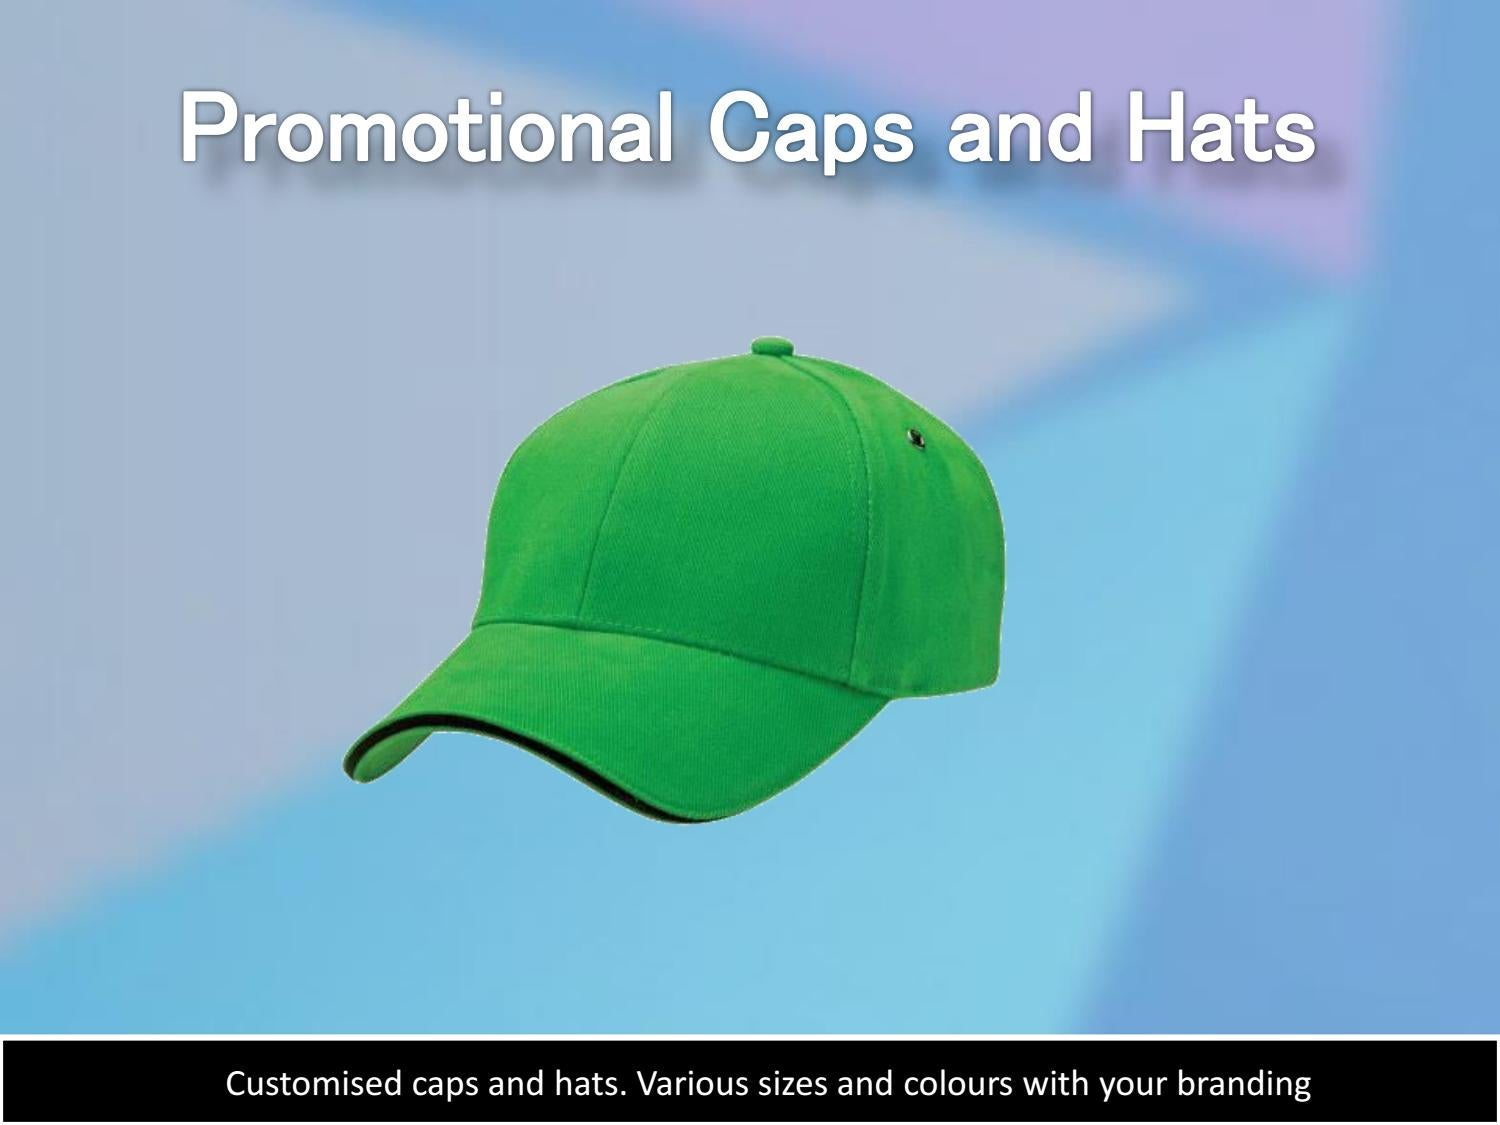 Promotional caps and hats chameleon print by Chameleon Print Group - issuu 524cae4bfbf